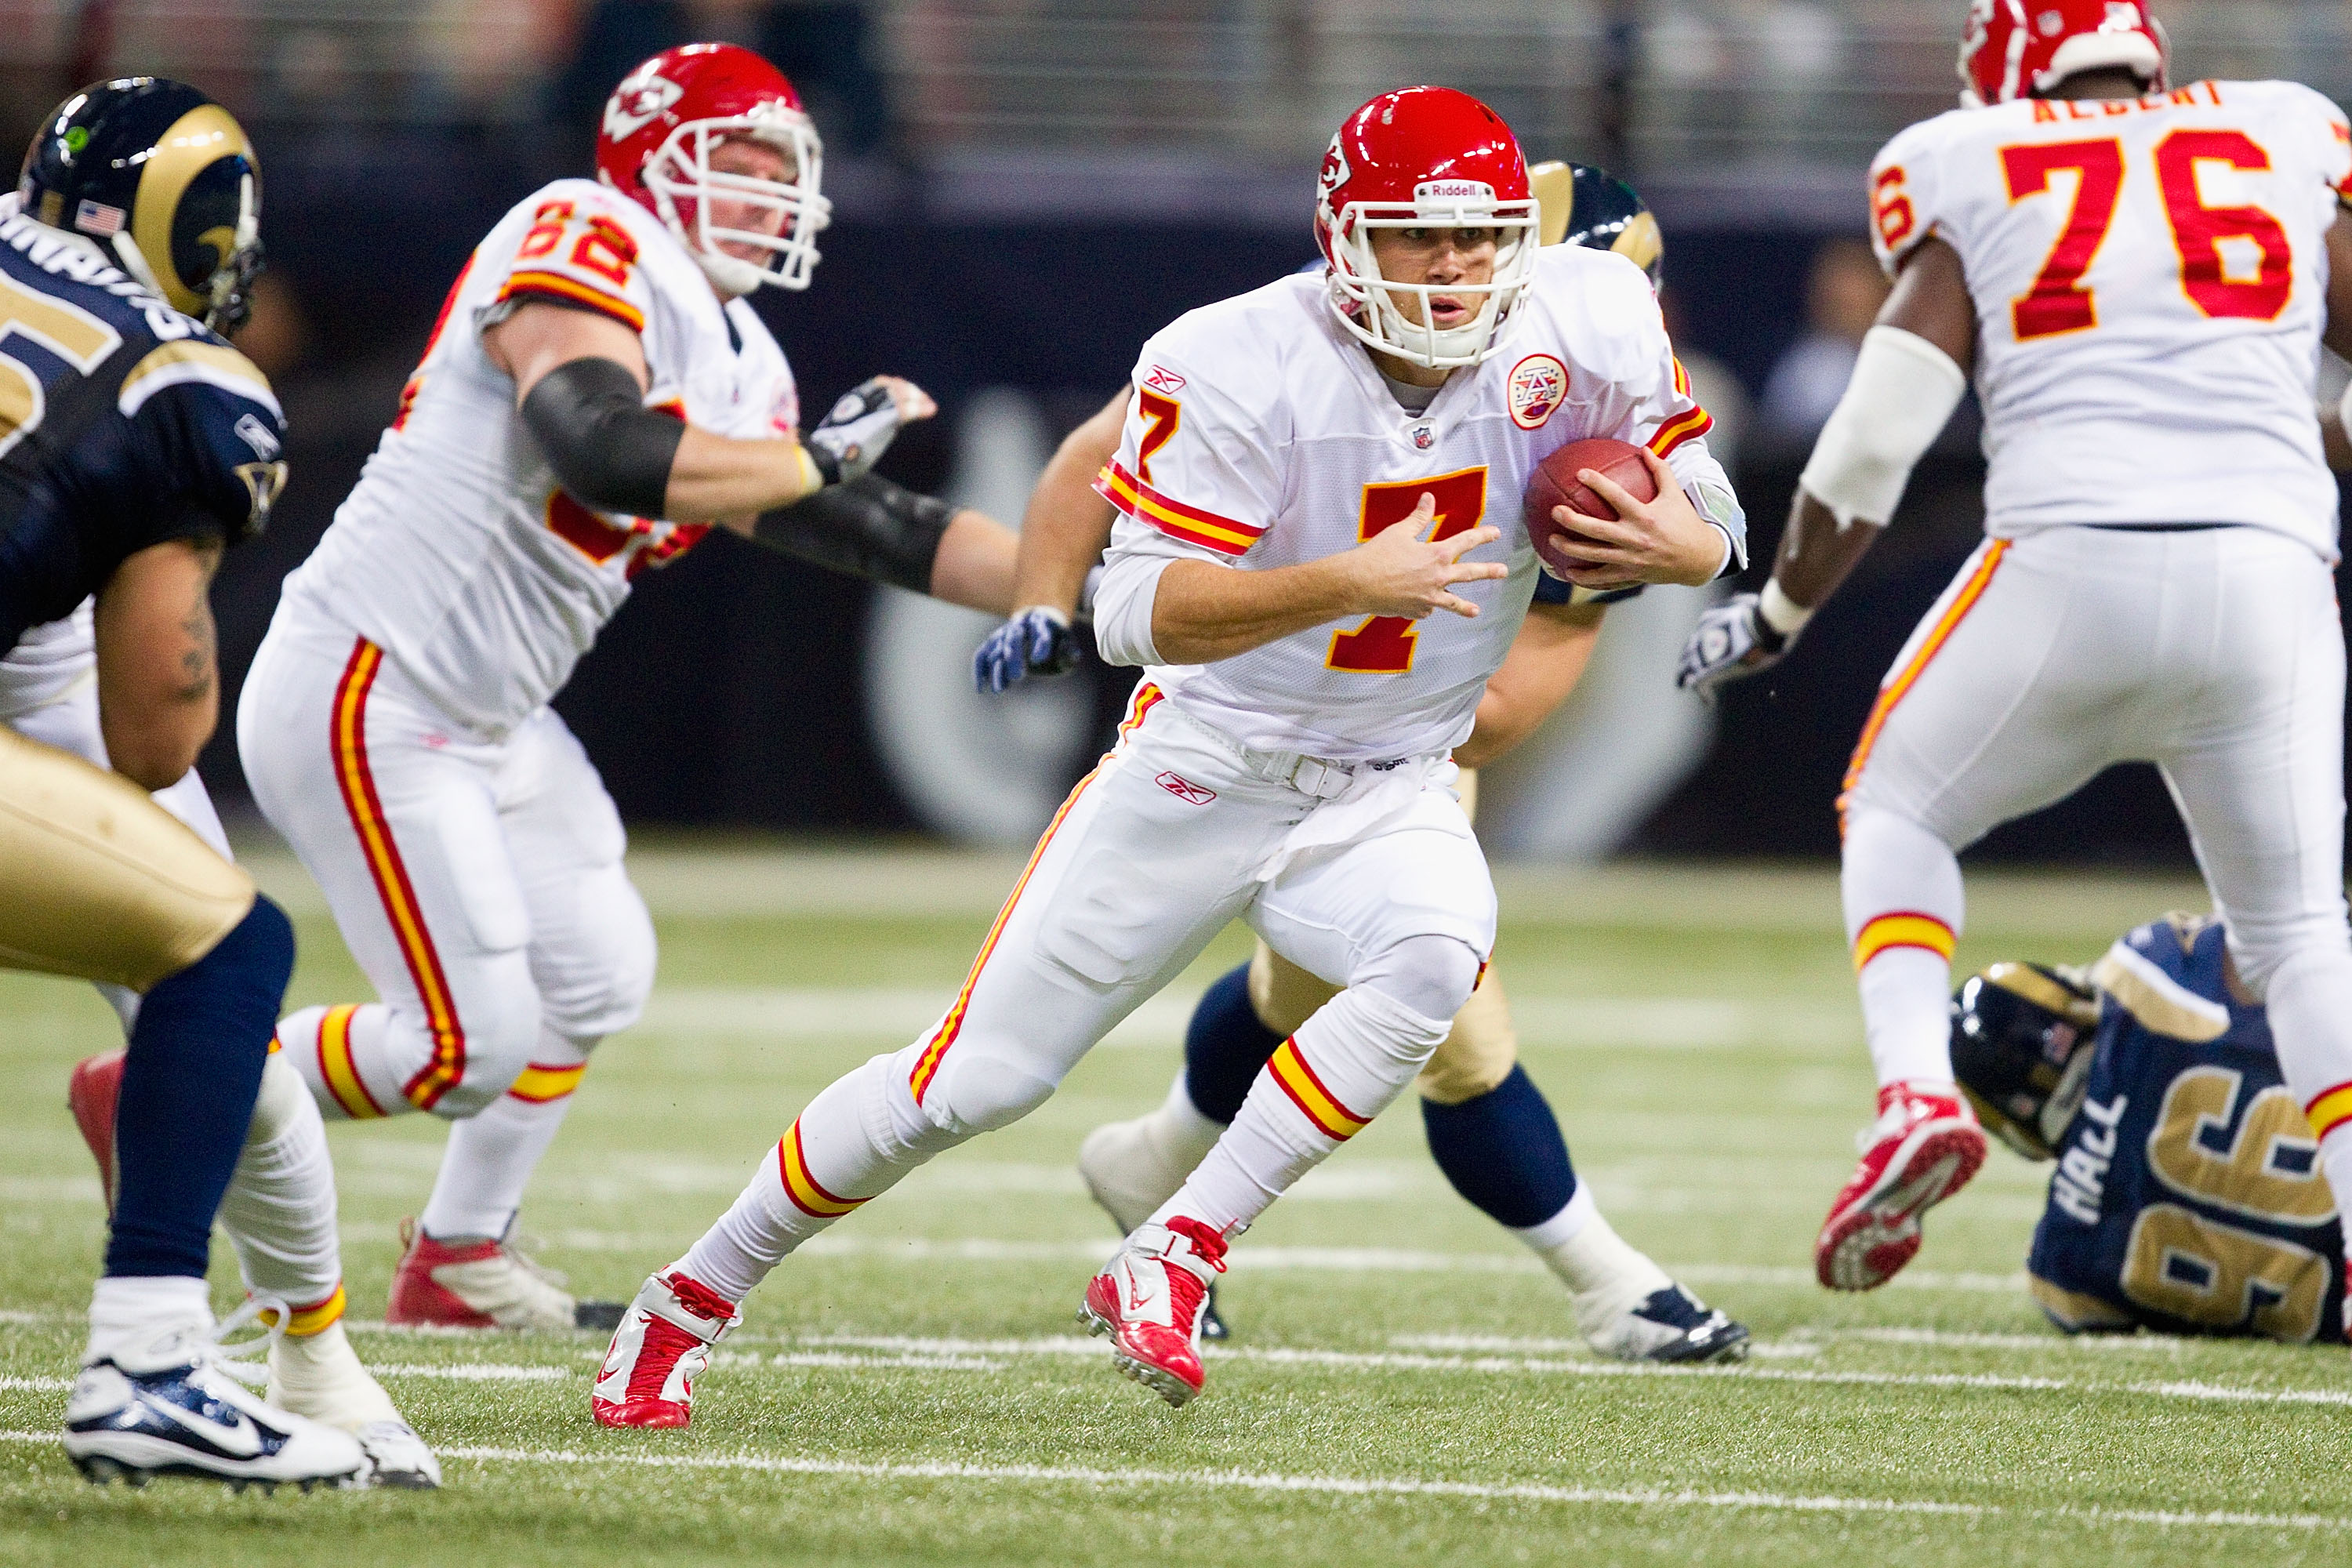 ST. LOUIS, MO - DECEMBER 19: Matt Cassel #7 of the Kansas City Chiefs scrambles against the St. Louis Rams at the Edward Jones Dome on December 19, 2010 in St. Louis, Missouri.  The Chiefs beat the Rams 27-13.  (Photo by Dilip Vishwanat/Getty Images)